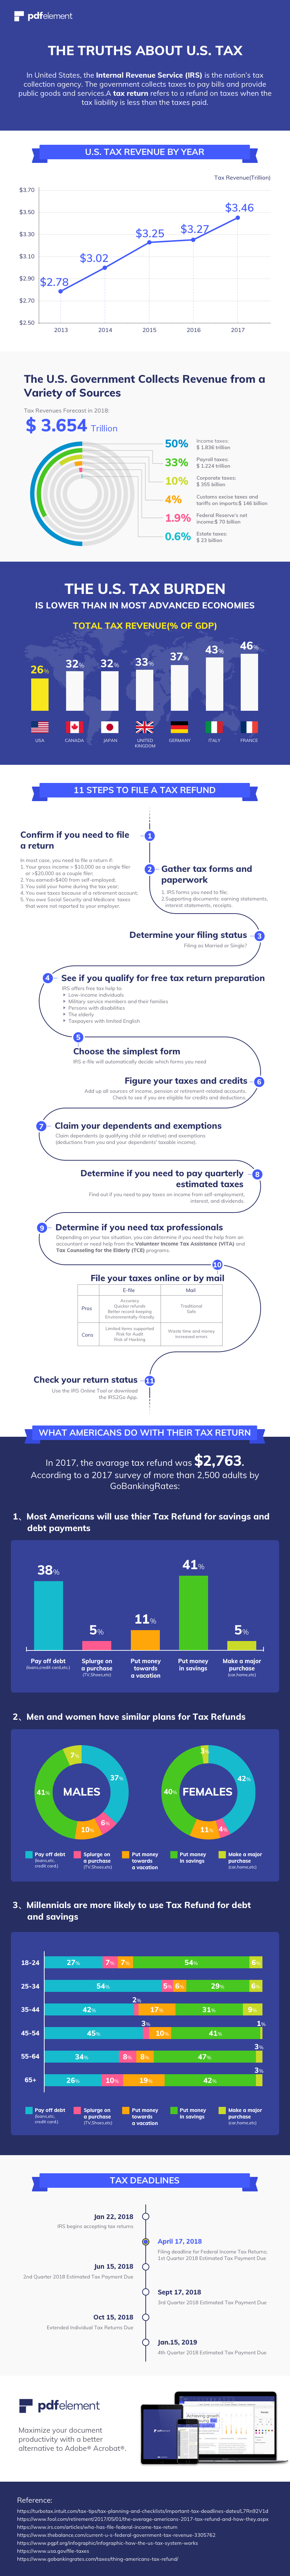 Facts about Tax Refund in U.S. in 2018